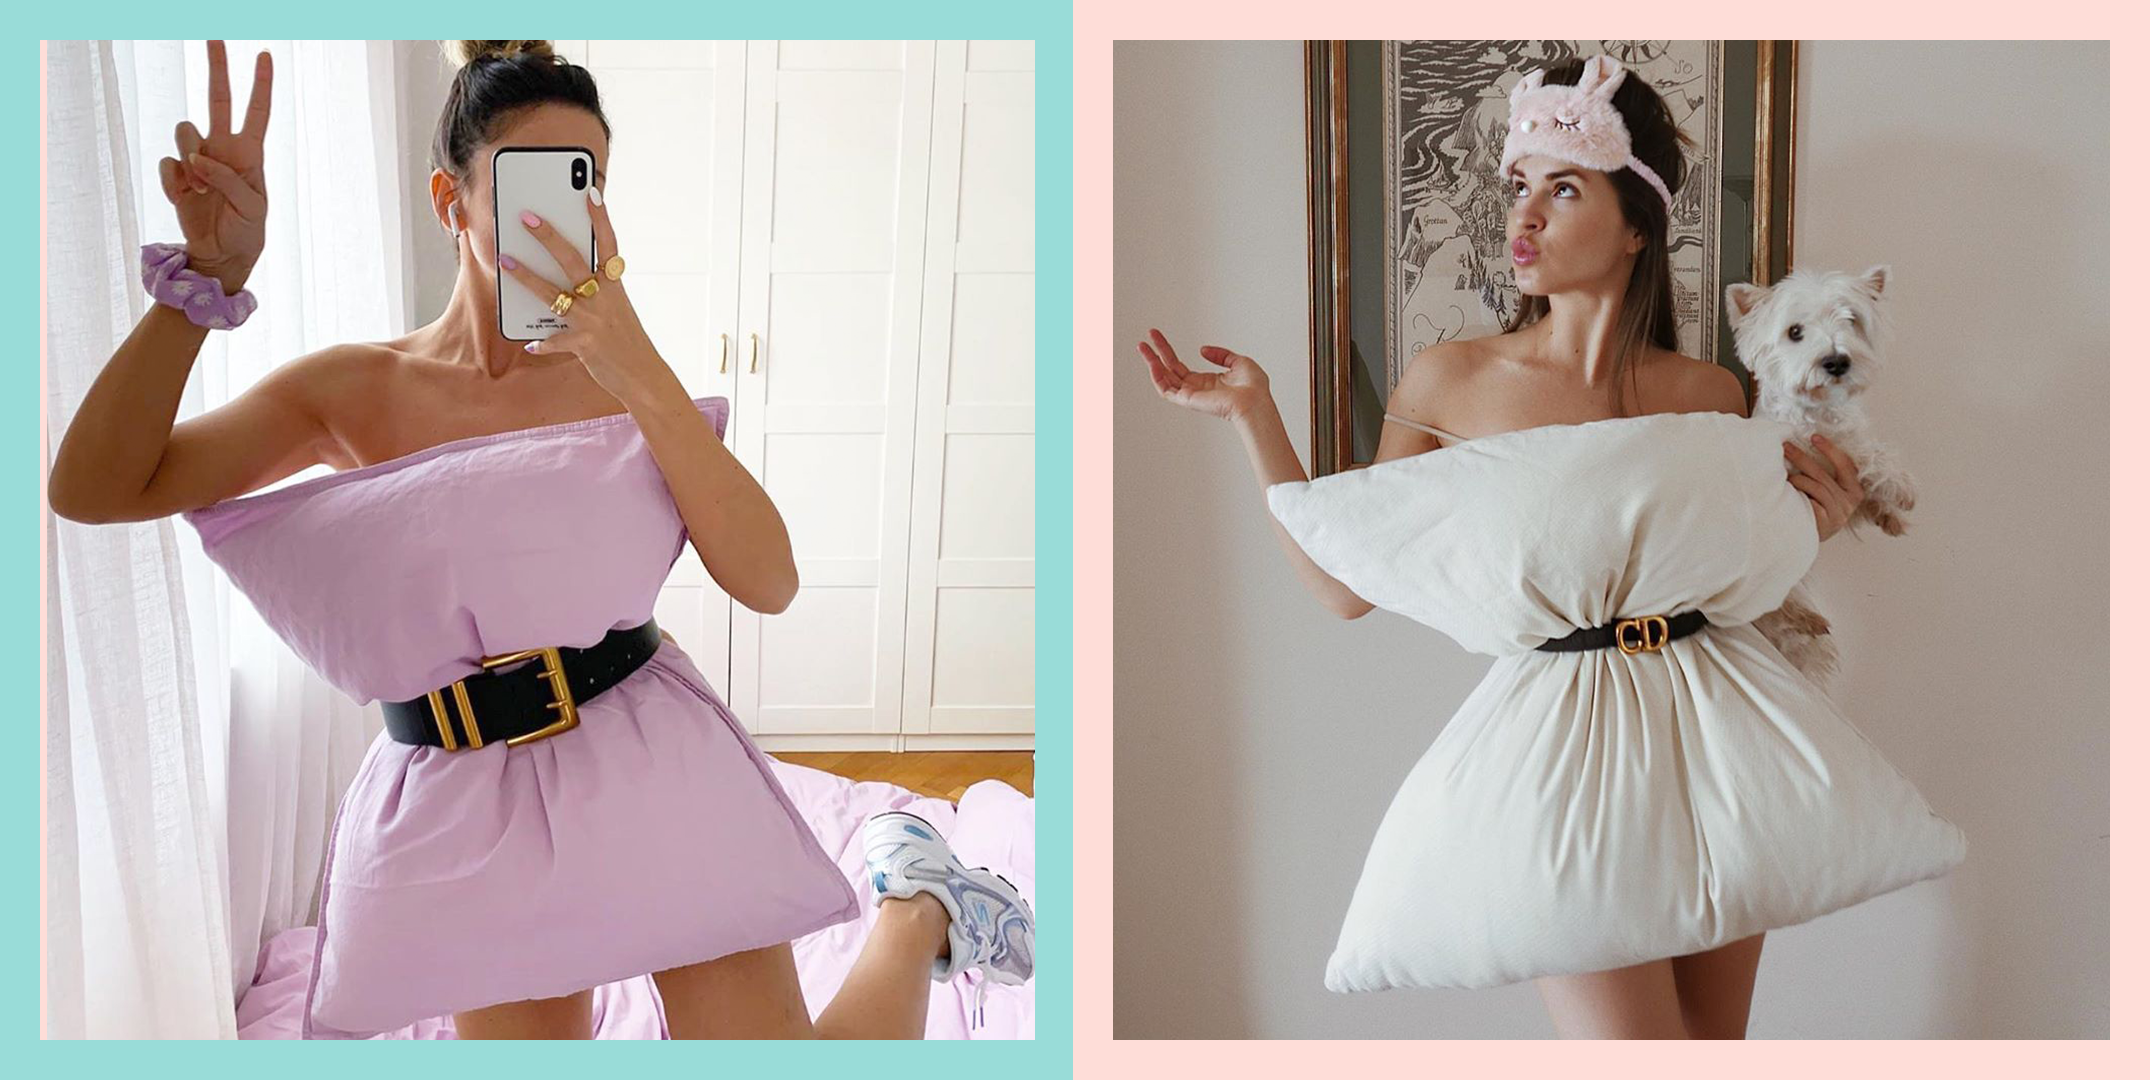 Instagram's Favorite New Fashion Trend Is Belting a Pillow to Yourself, LOL